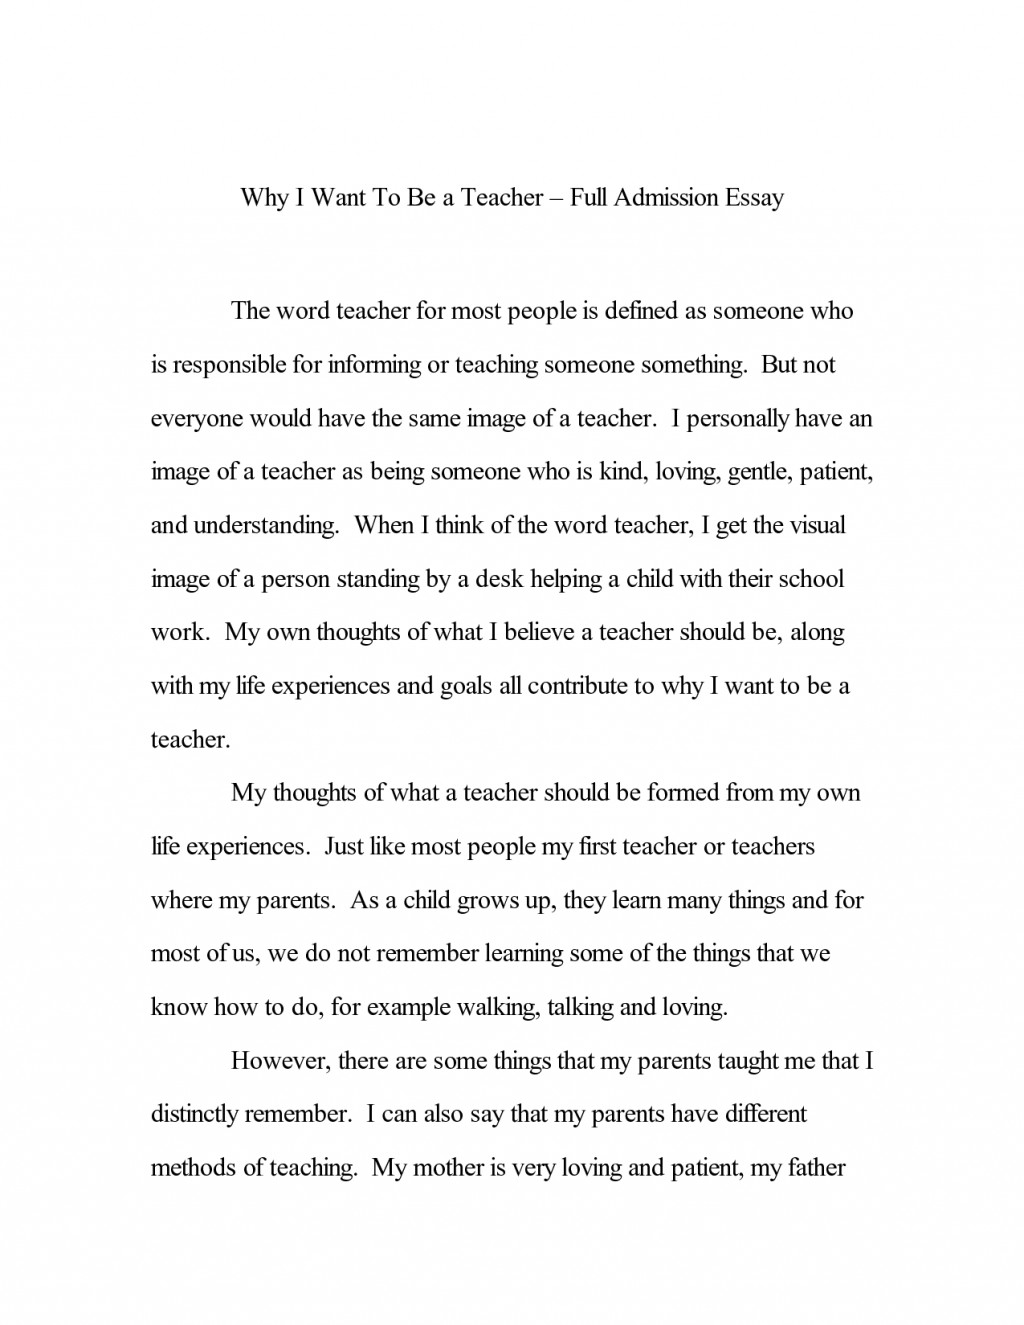 003 Sample College Application Essays Essay Remarkable About Diversity Pdf Leadership Large